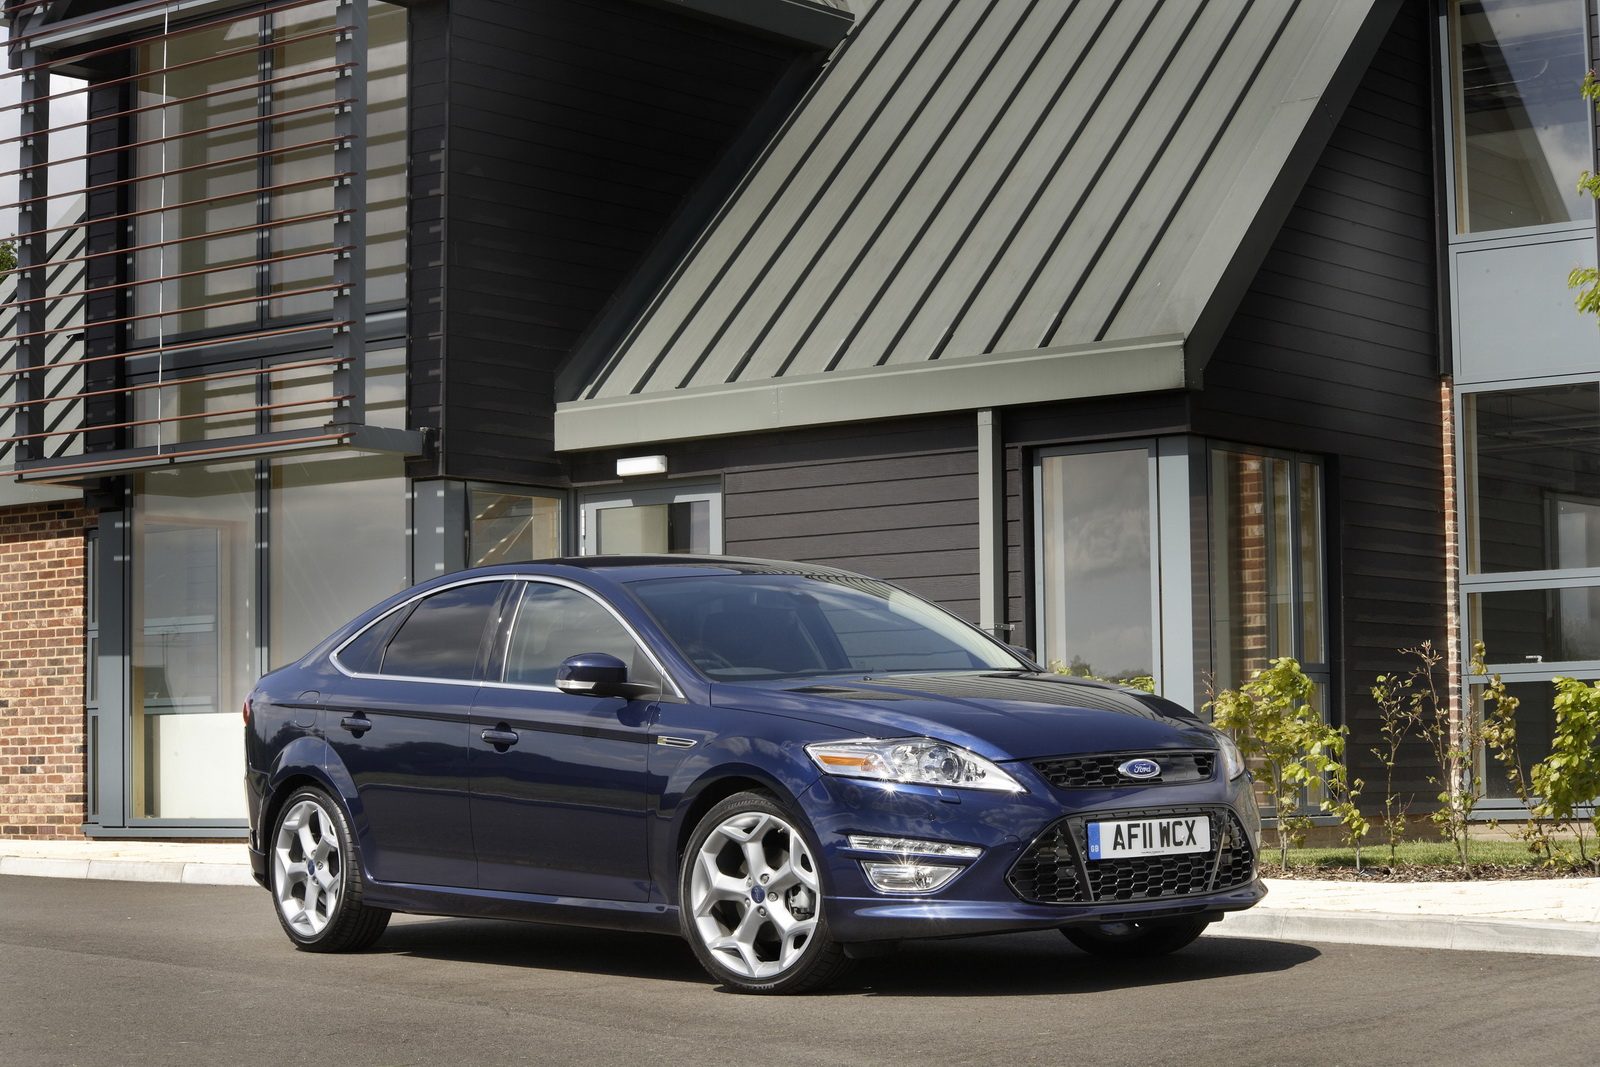 new ford mondeo extends eco and performance powertrains. Black Bedroom Furniture Sets. Home Design Ideas